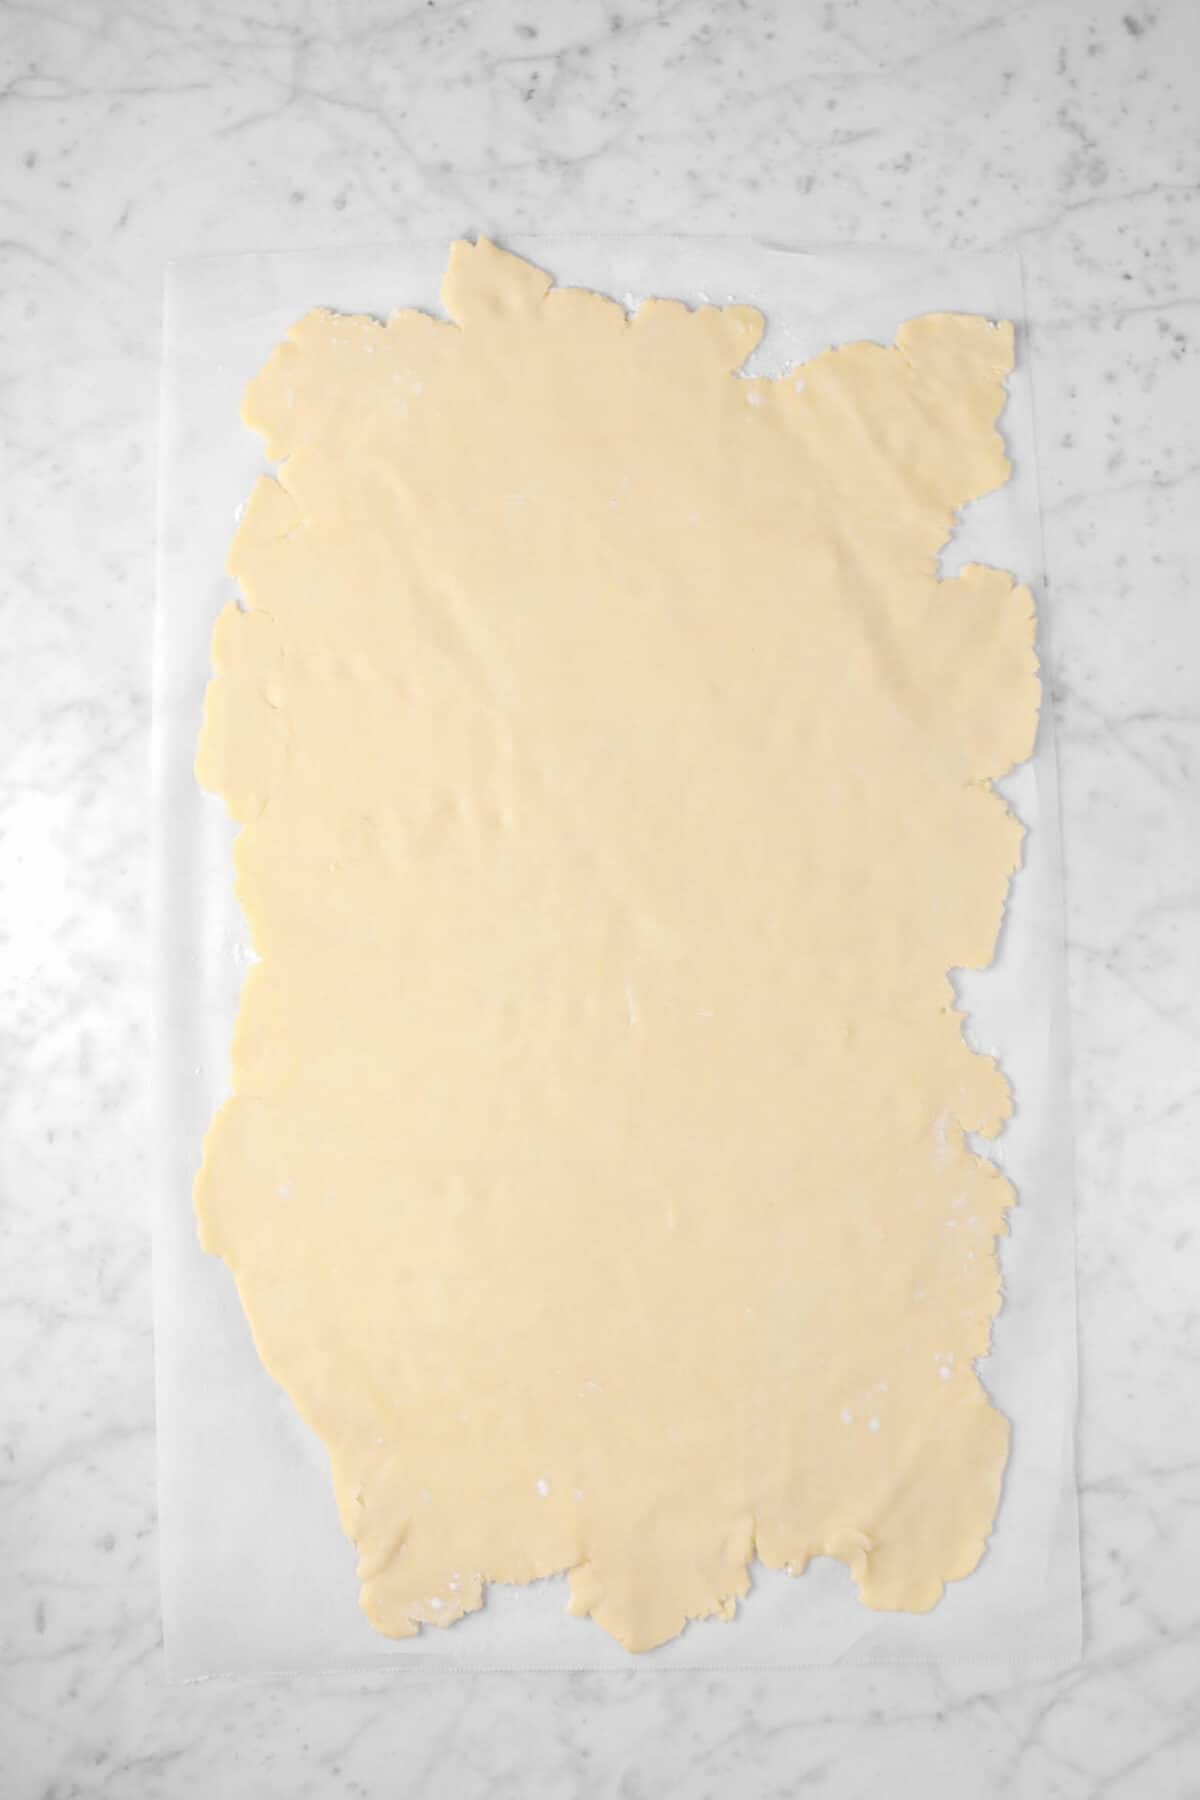 pie dough rolled out onto a large piece of parchment